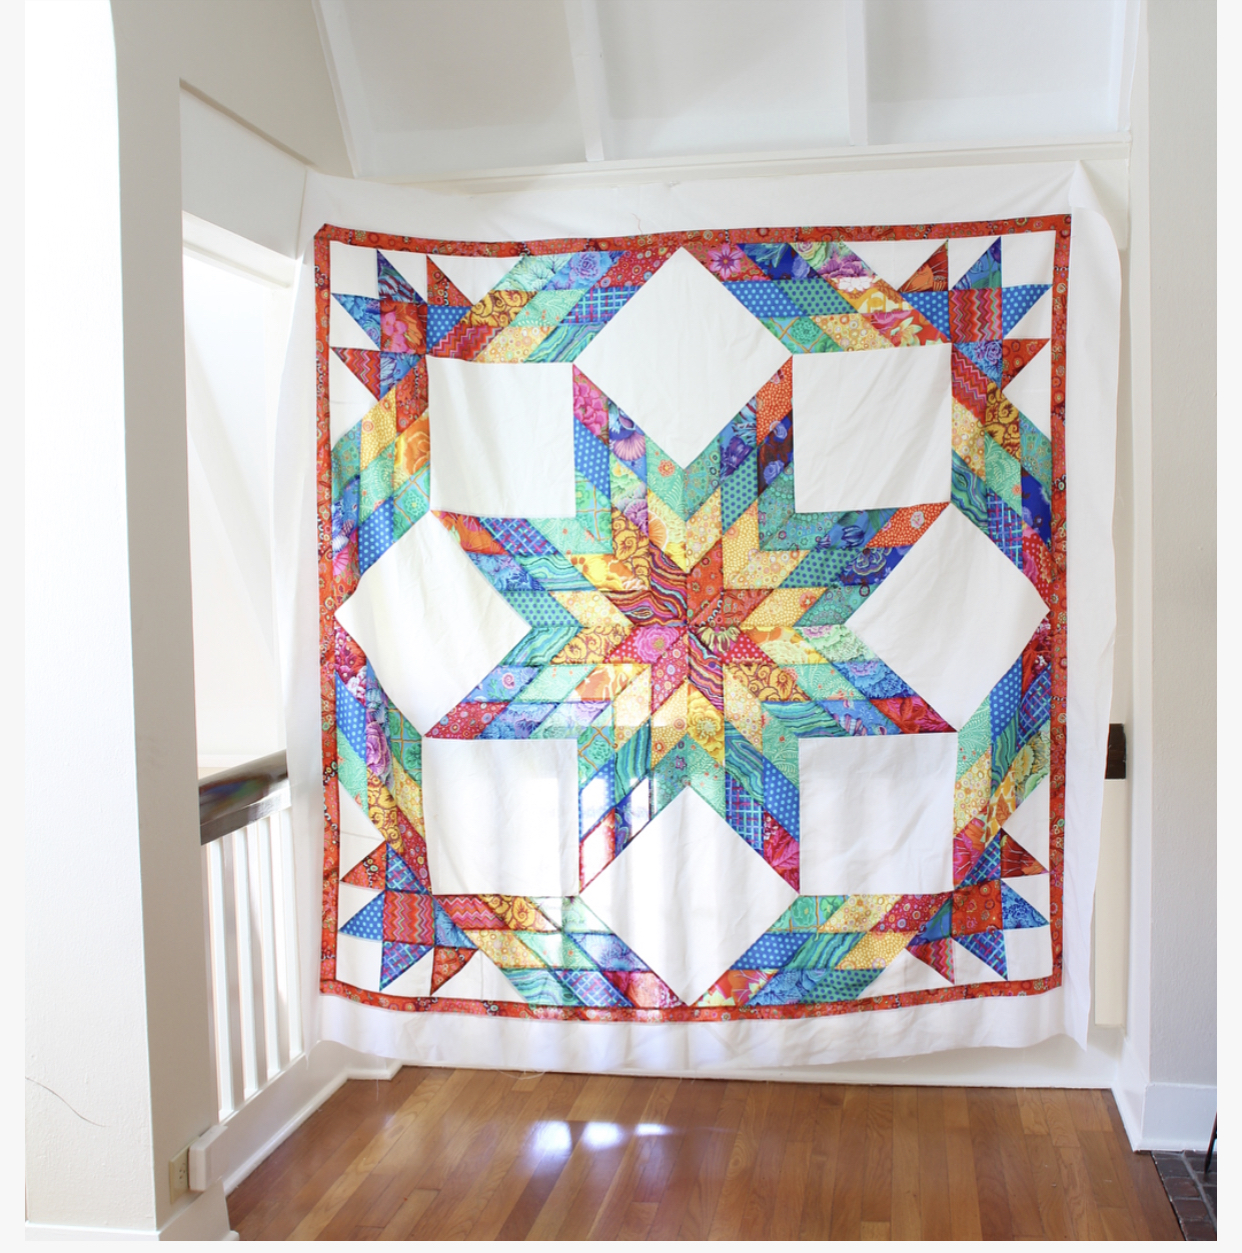 Kaffe Fassett Rainbow Lone Star quilt designed by Callie Works-Leary | #quilt #quiltpattern #rainbowquilt #rainbow #lonestar #lonestarquilt #modernquilt #traditionalquilt